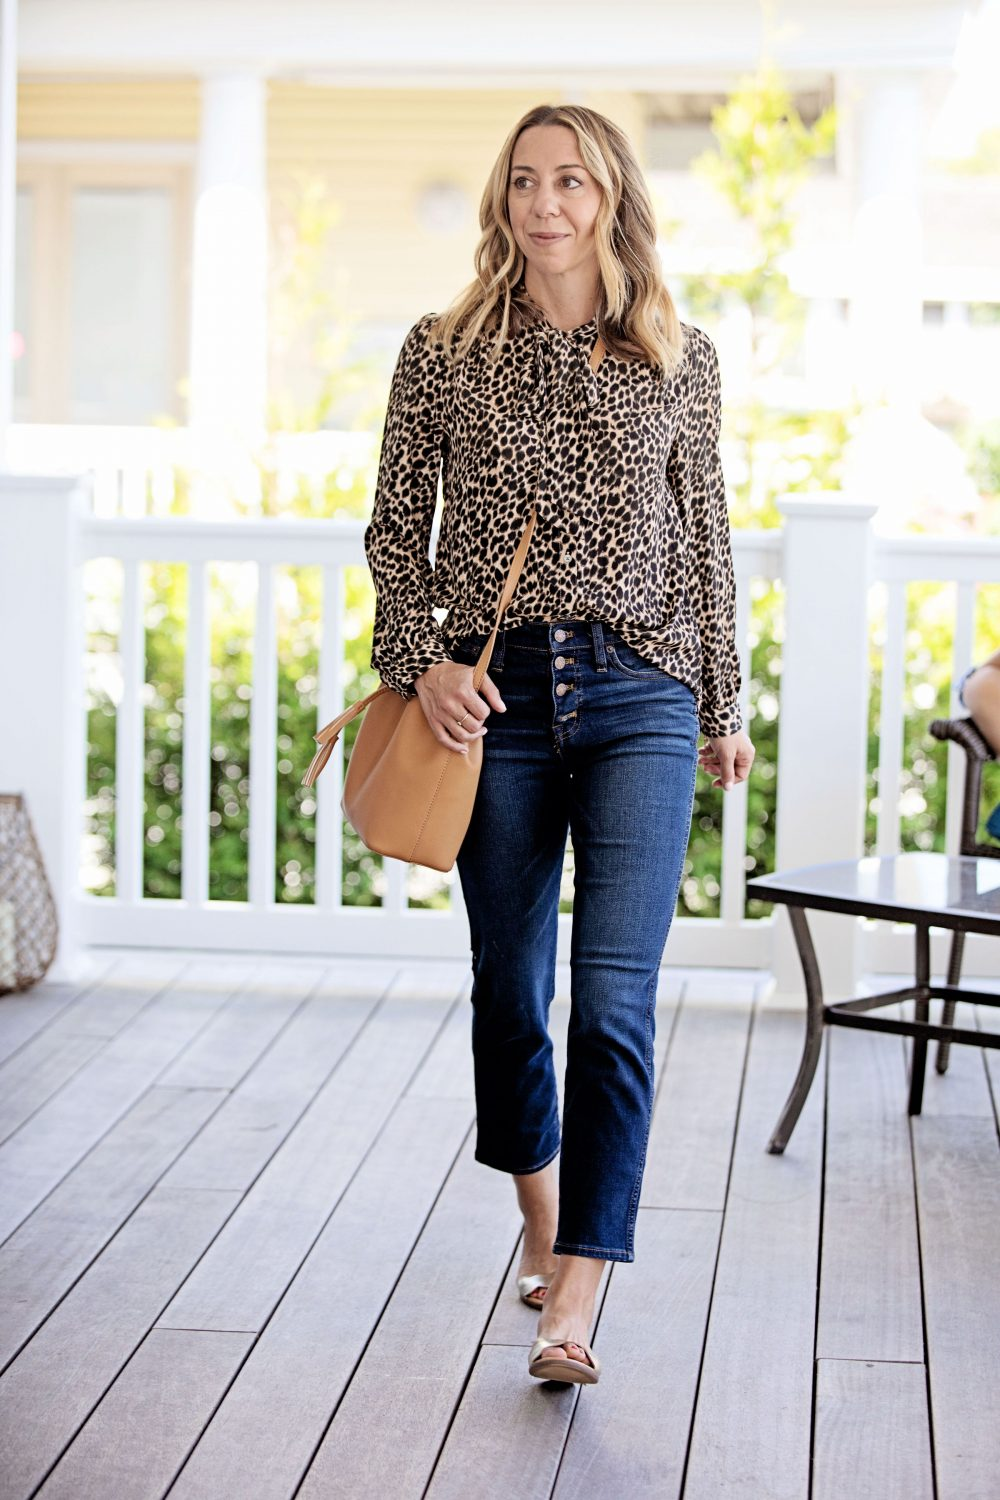 The Motherchic wearing J.Crew Factory leopard top and jeans